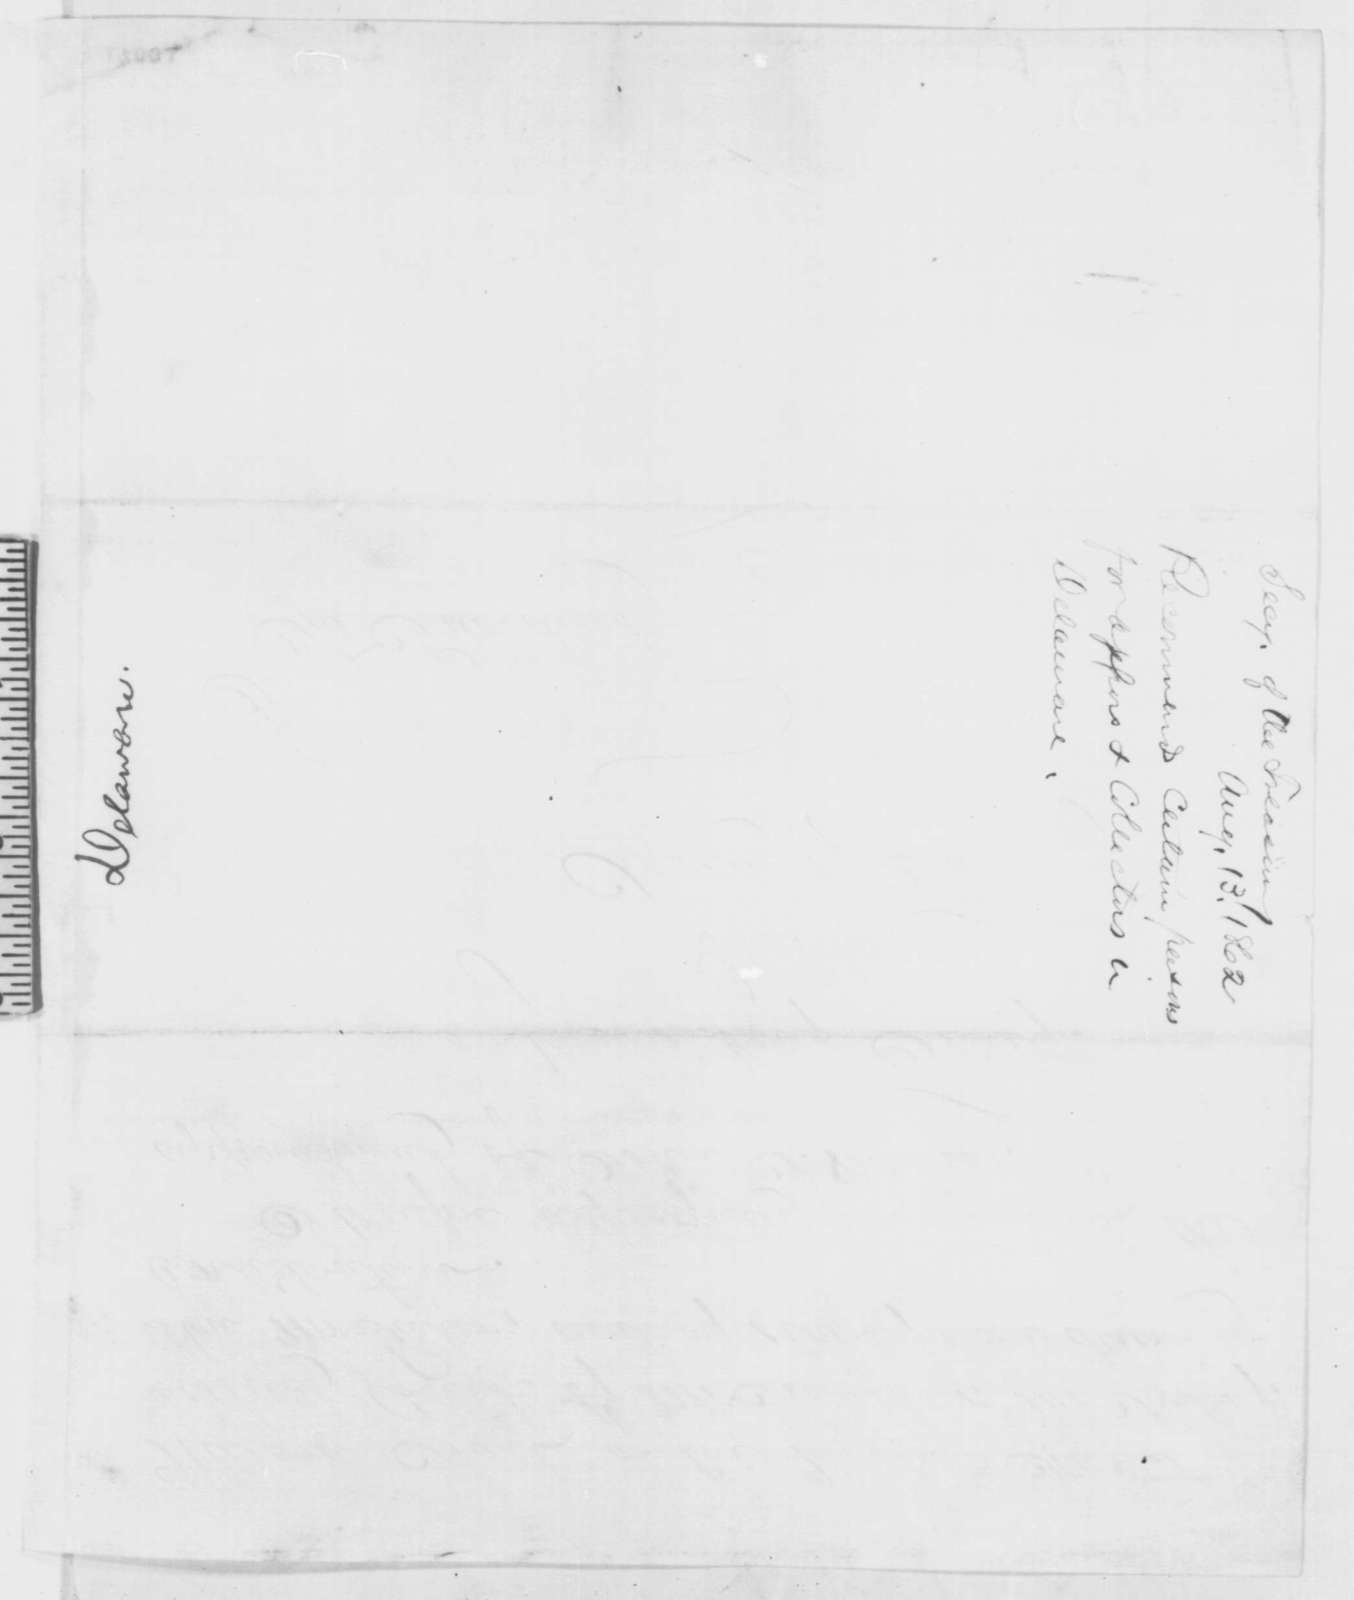 Salmon P. Chase to Abraham Lincoln, Wednesday, August 13, 1862  (Delaware appointments)